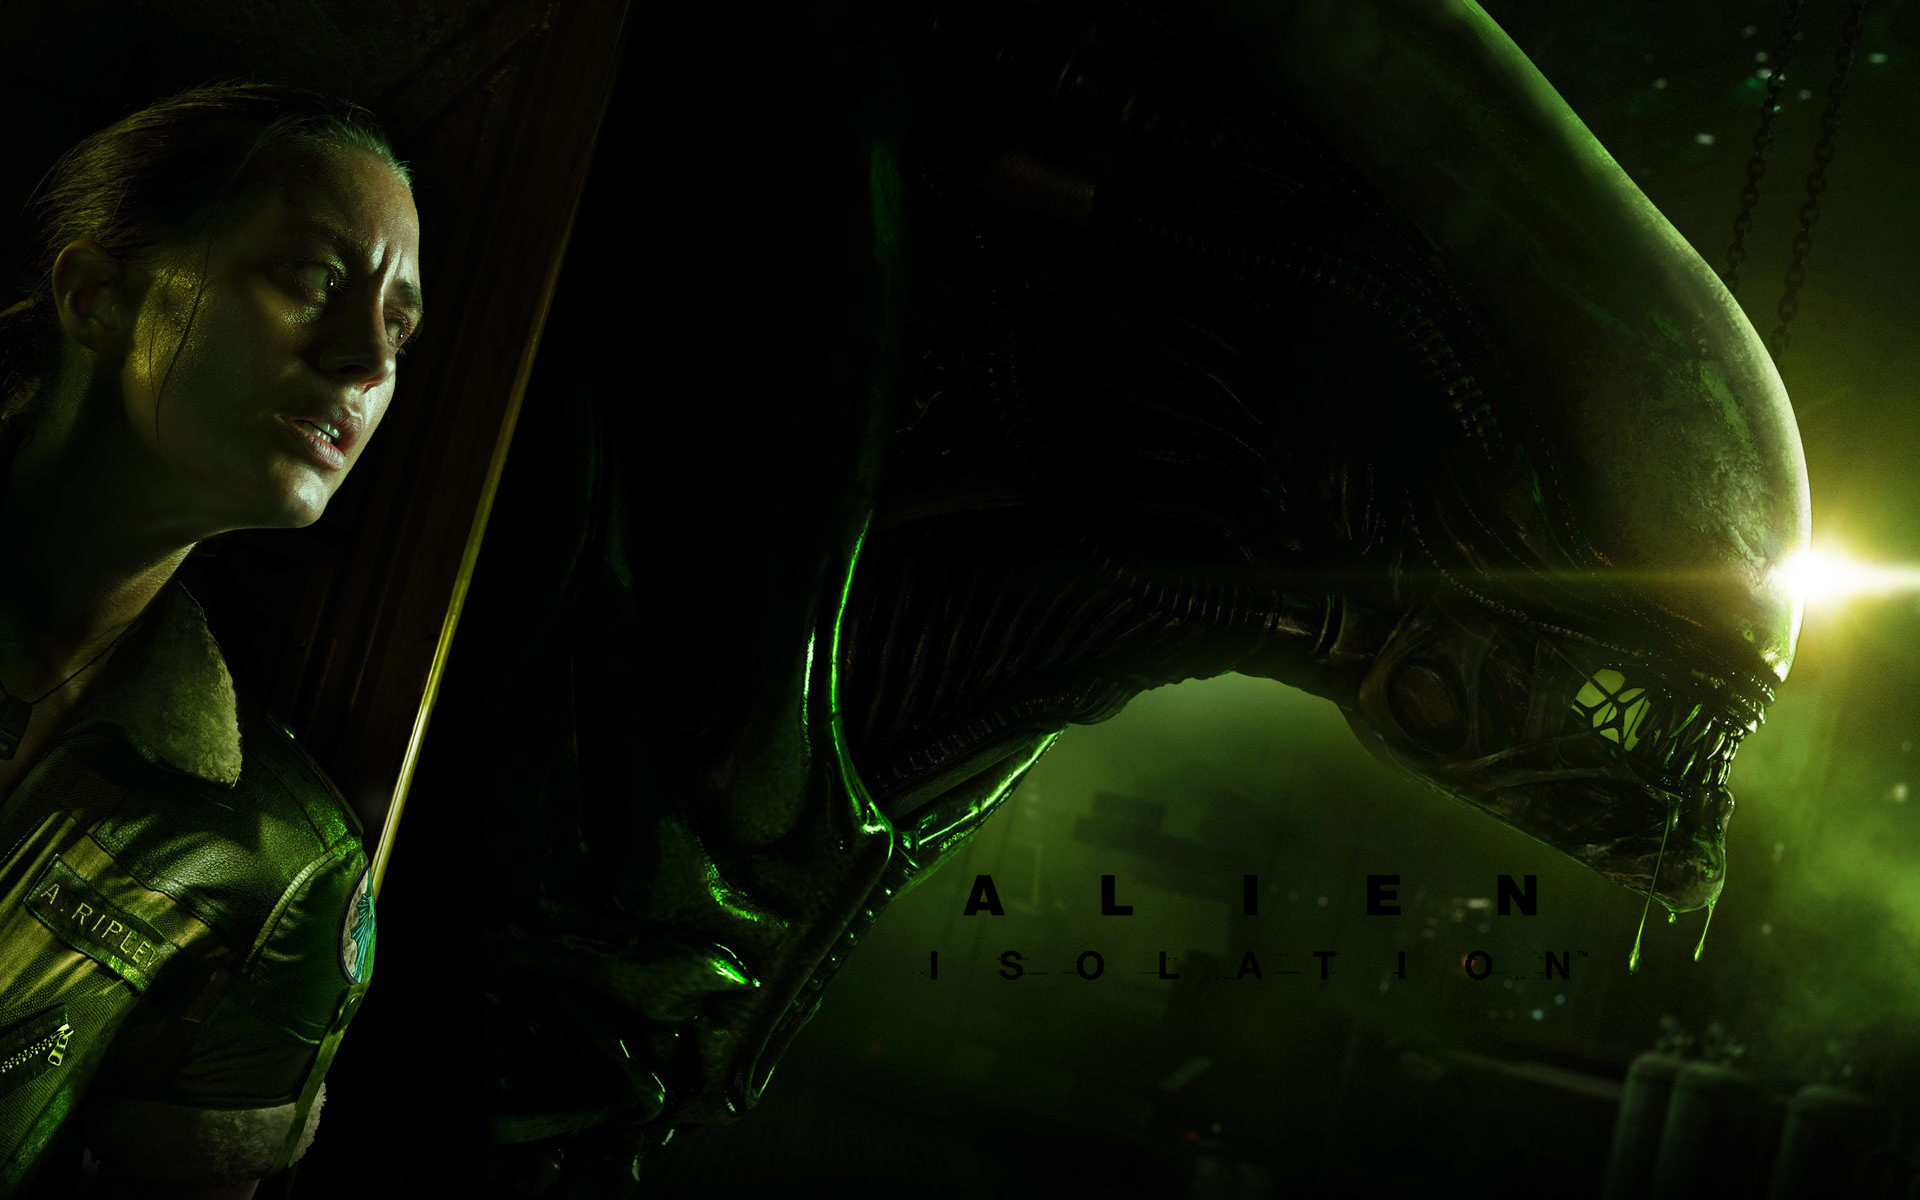 """Alien: Isolation"" - In Space, No One Can Hear You Scream"